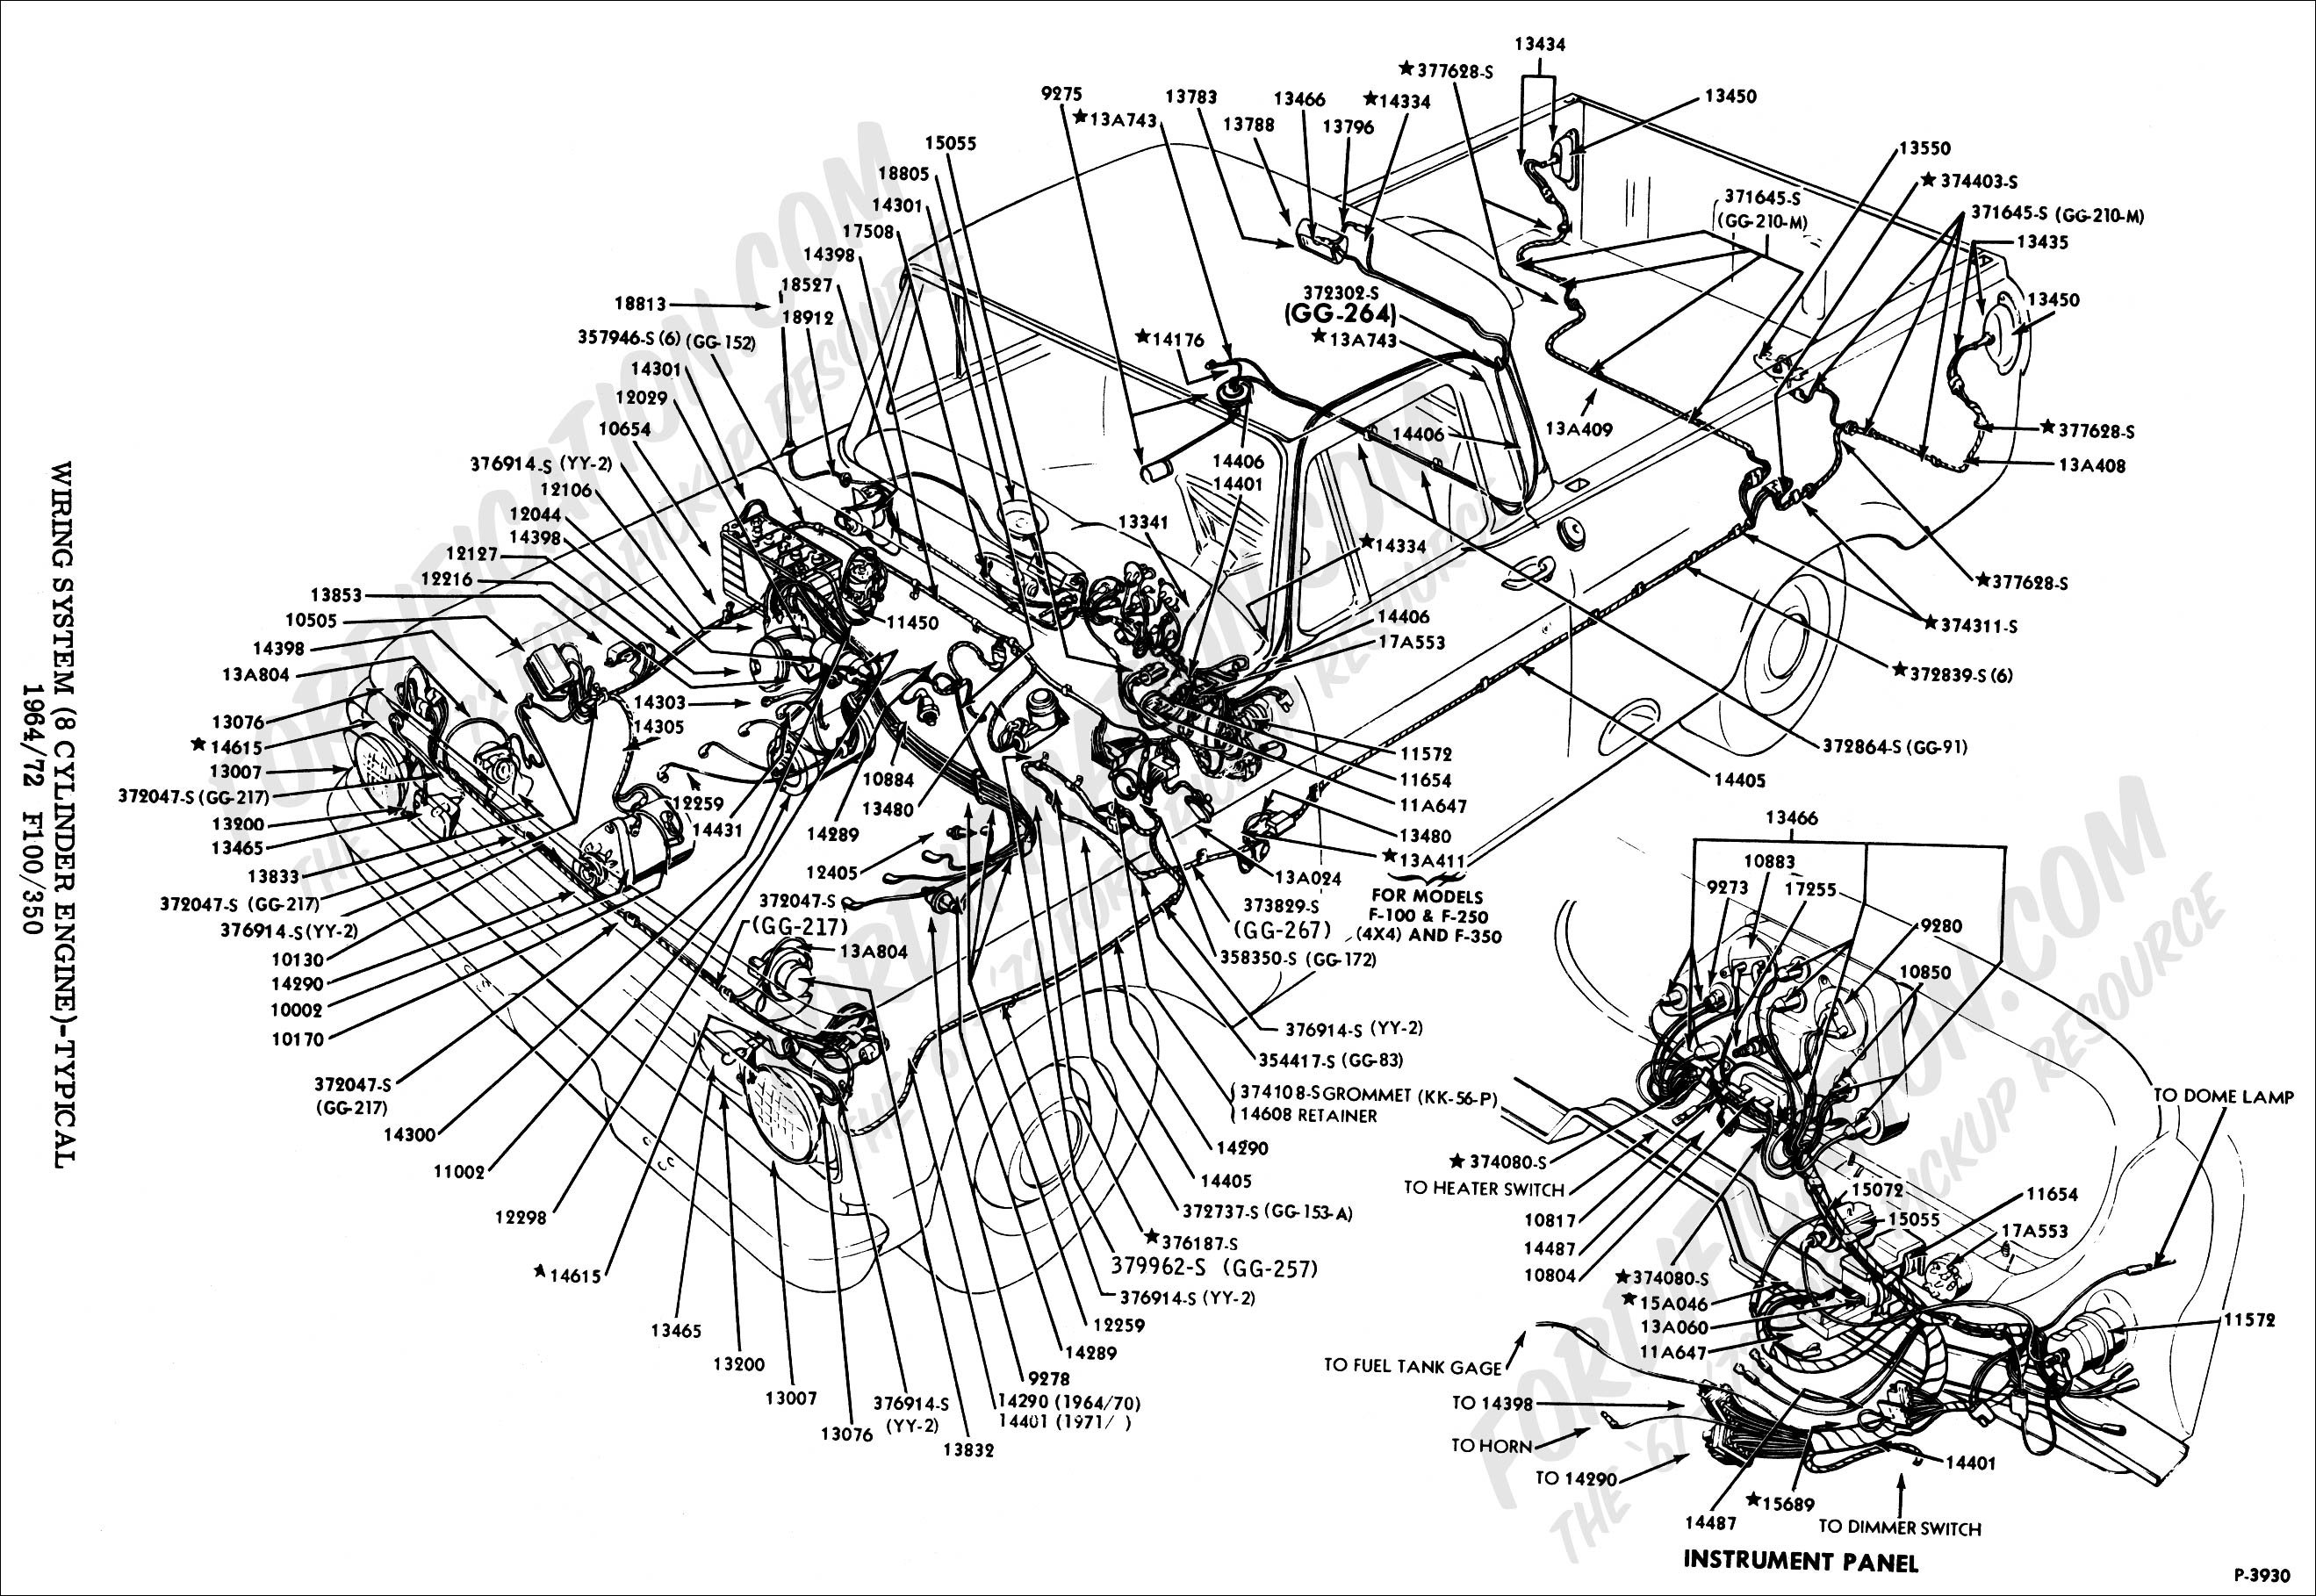 wiringsystem_HI ford truck technical drawings and schematics section i 1985 ford truck wiring diagram at bayanpartner.co